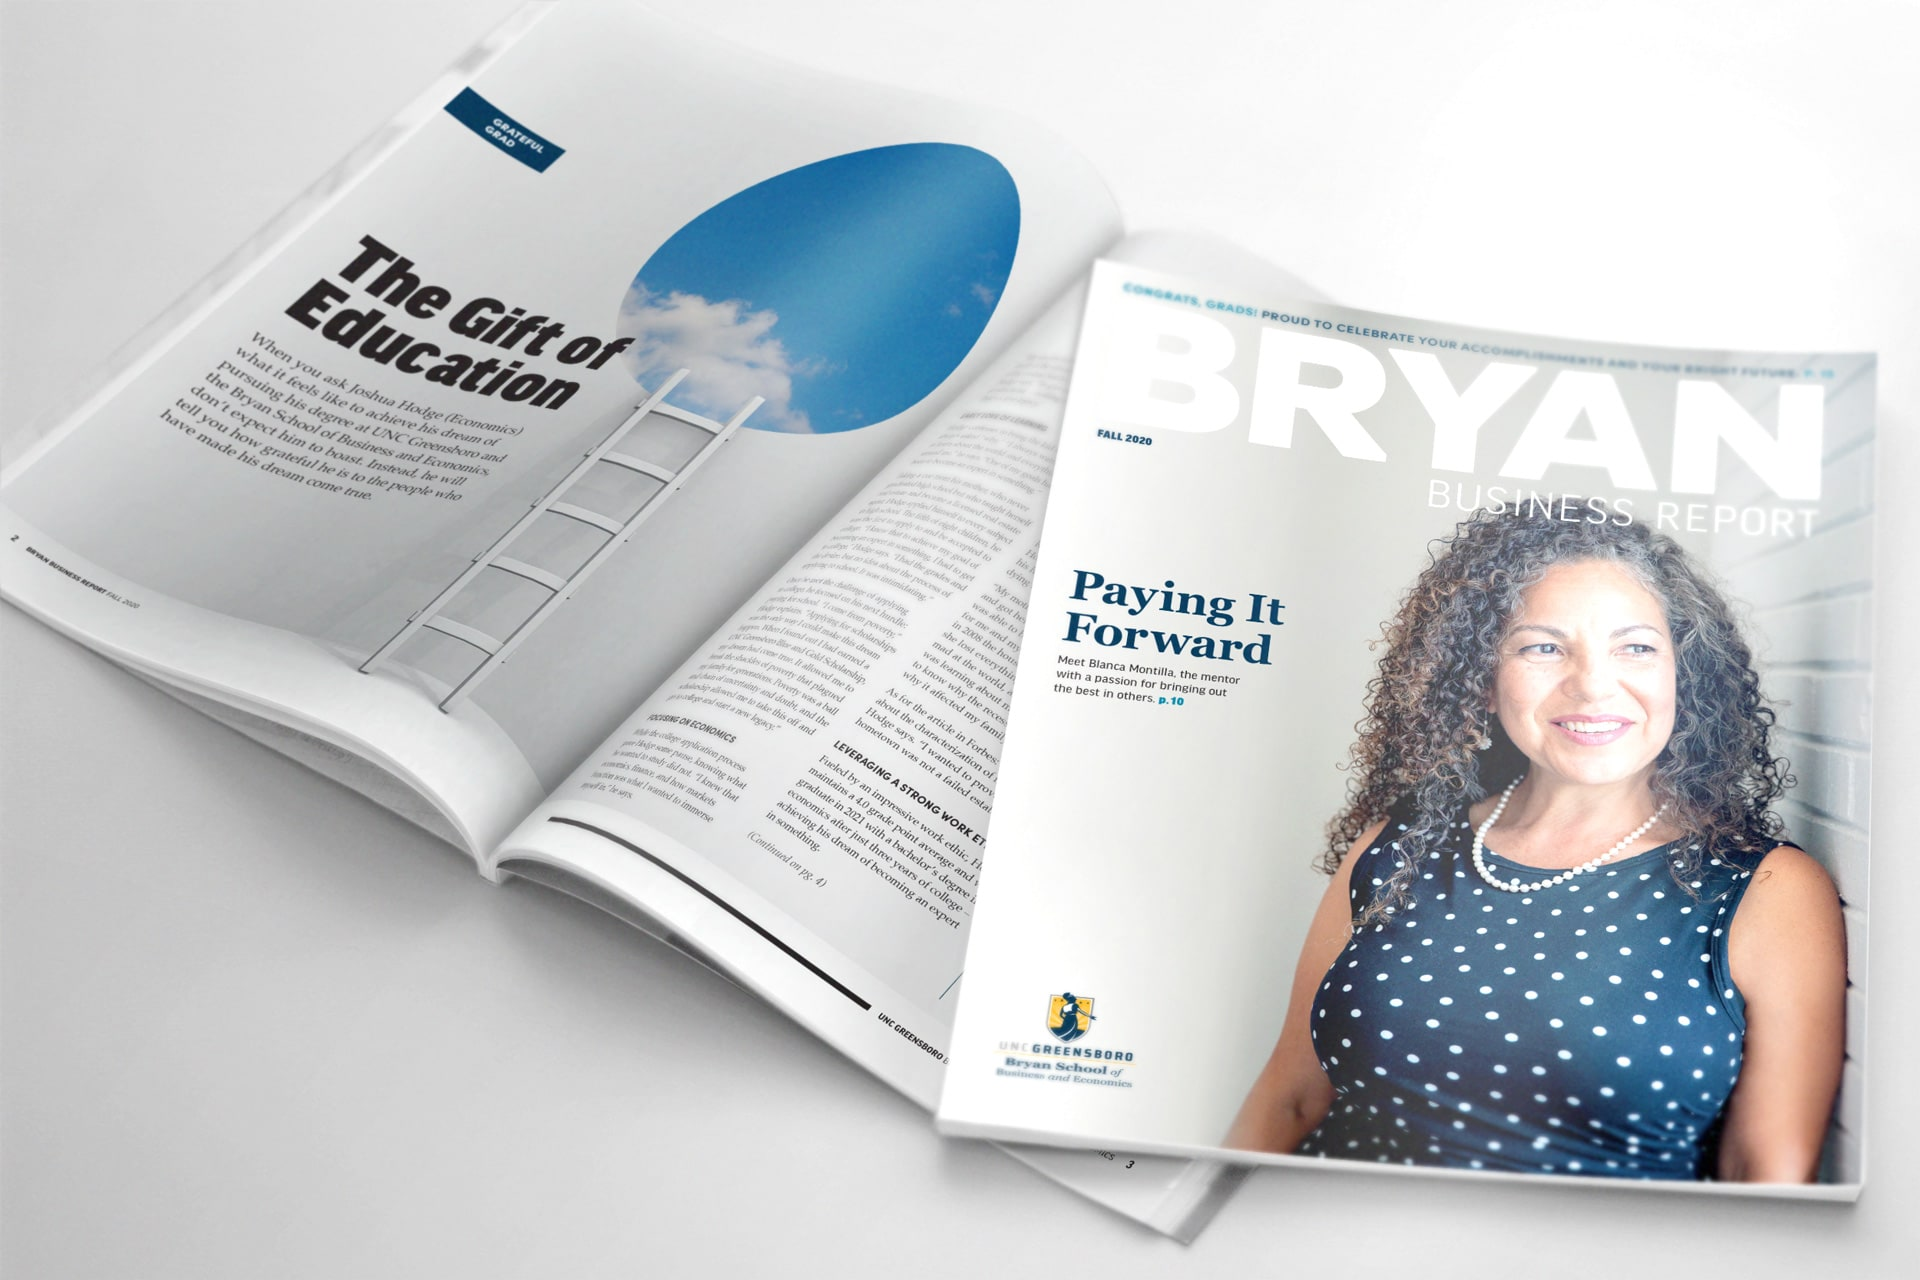 print magazine cover and inner spread